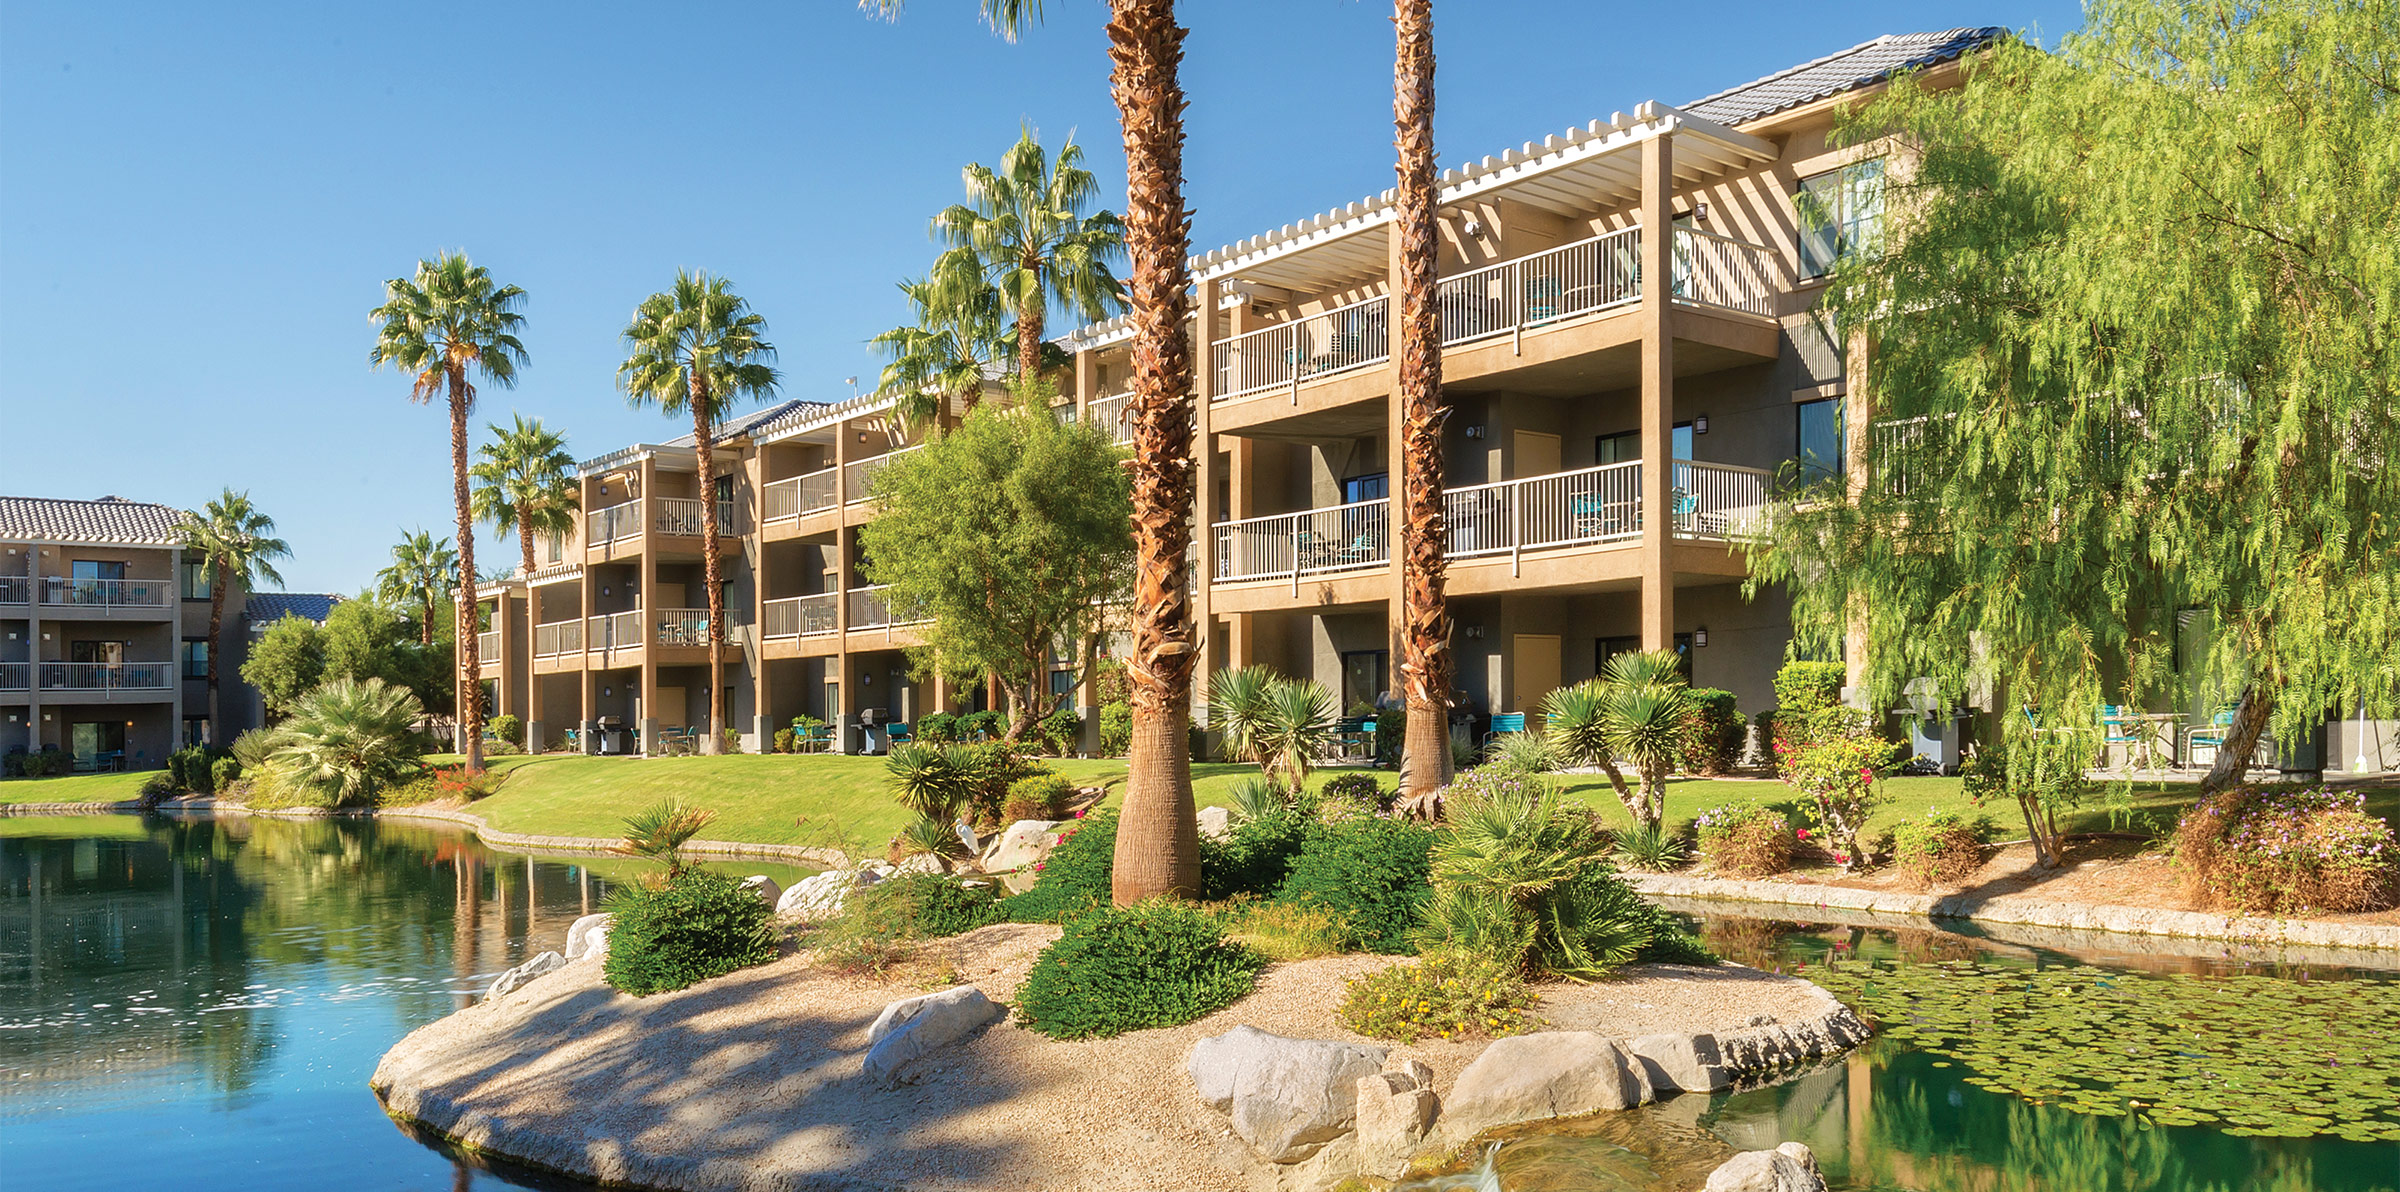 Apartment 2 Bedroom 2 Bath In Indio  CA   Palm Springs  5 miles from COACHELLA photo 18634372